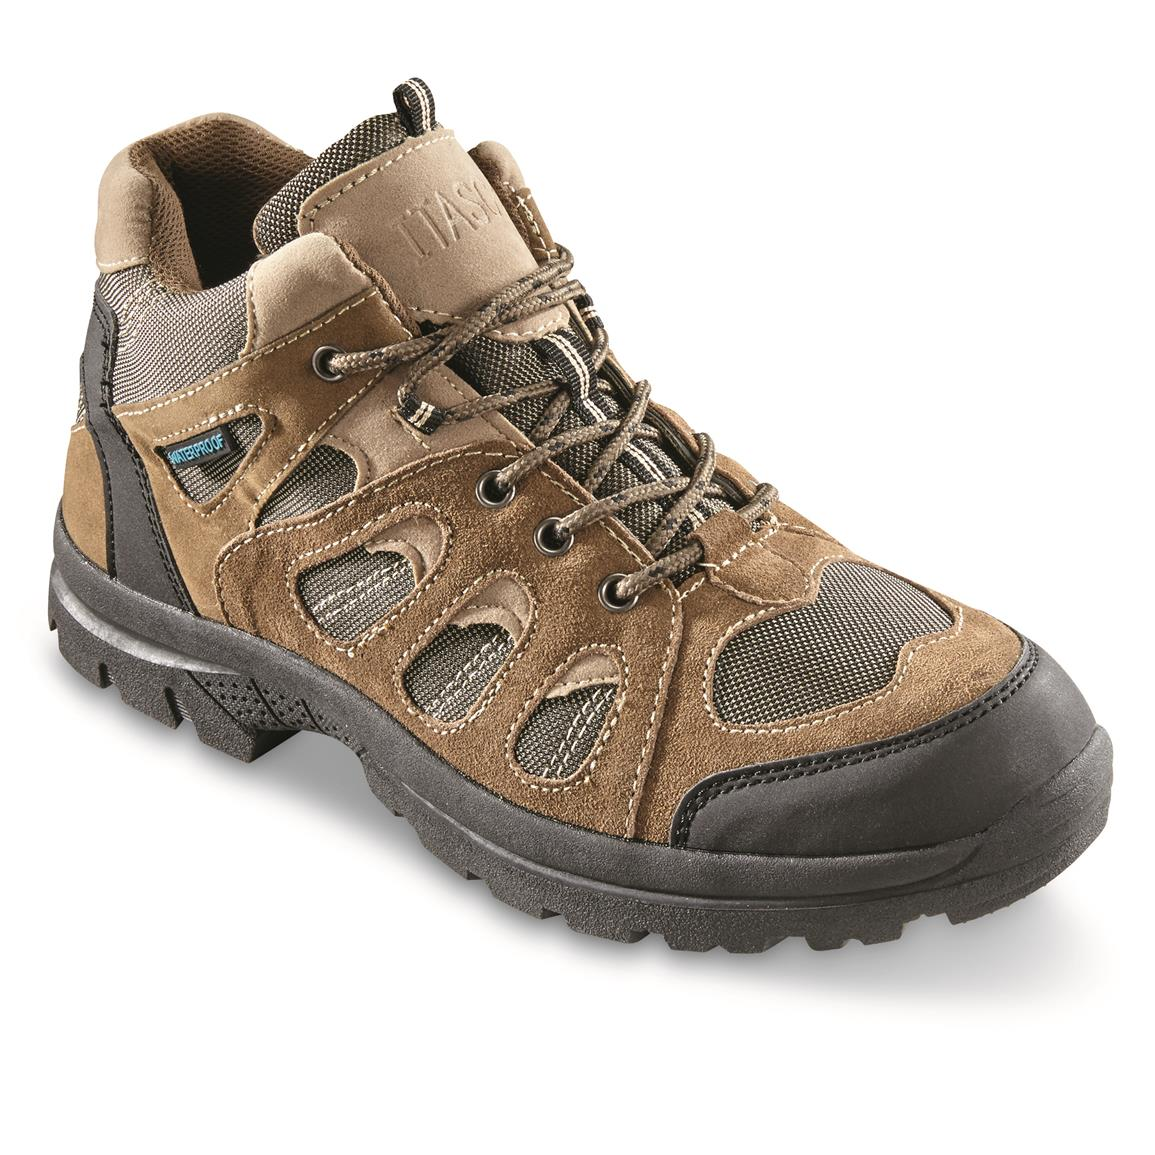 Men's Itasca Cross Creek Hiker Boots